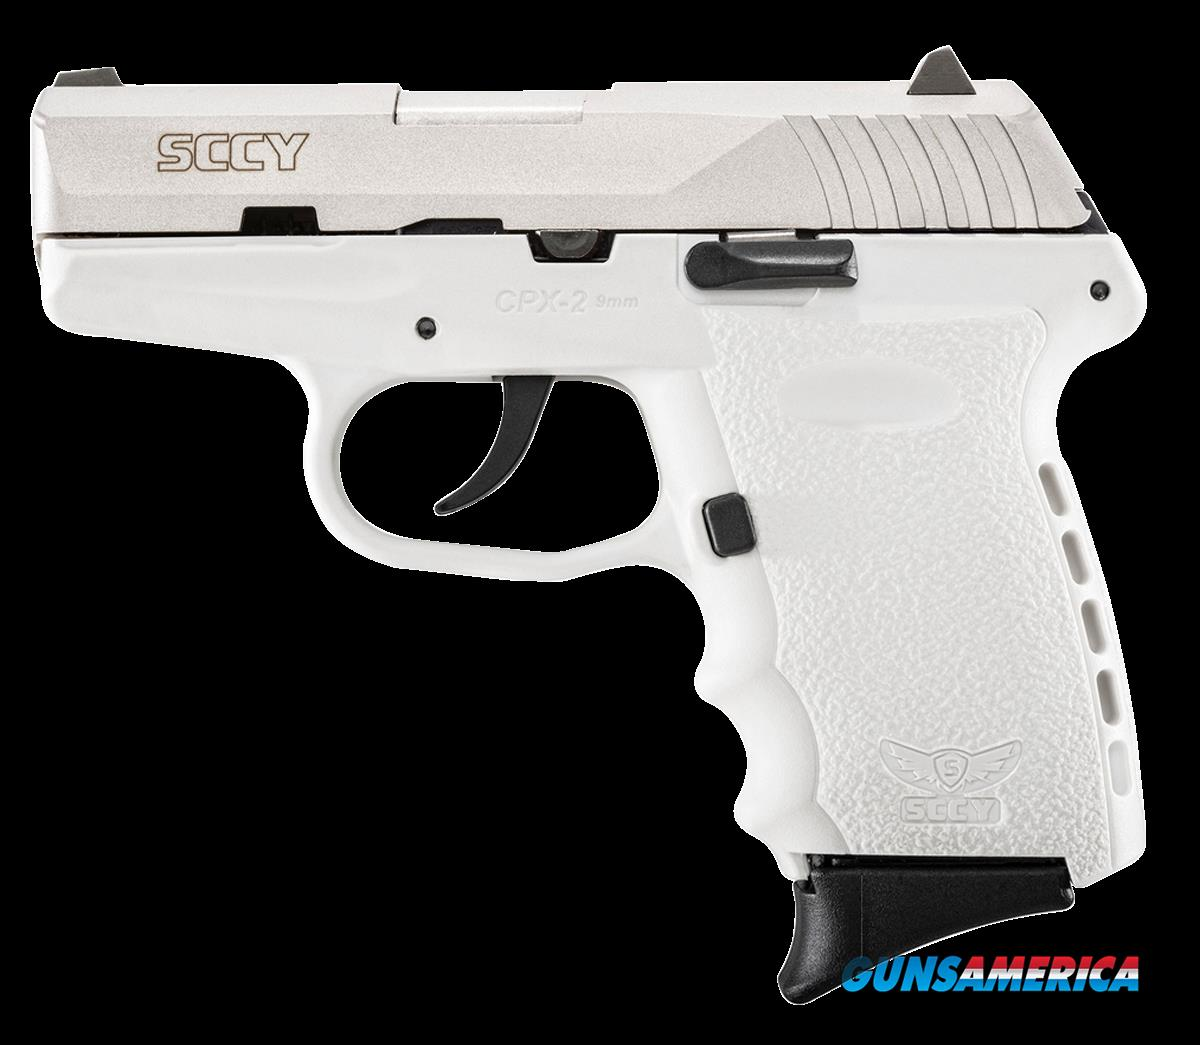 "SCCY Industries CPX2TTWT CPX-2 Double 9mm 3.1"" 10+1 White Polymer Grip/Frame Grip Stainless Steel  Guns > Pistols > S Misc Pistols"